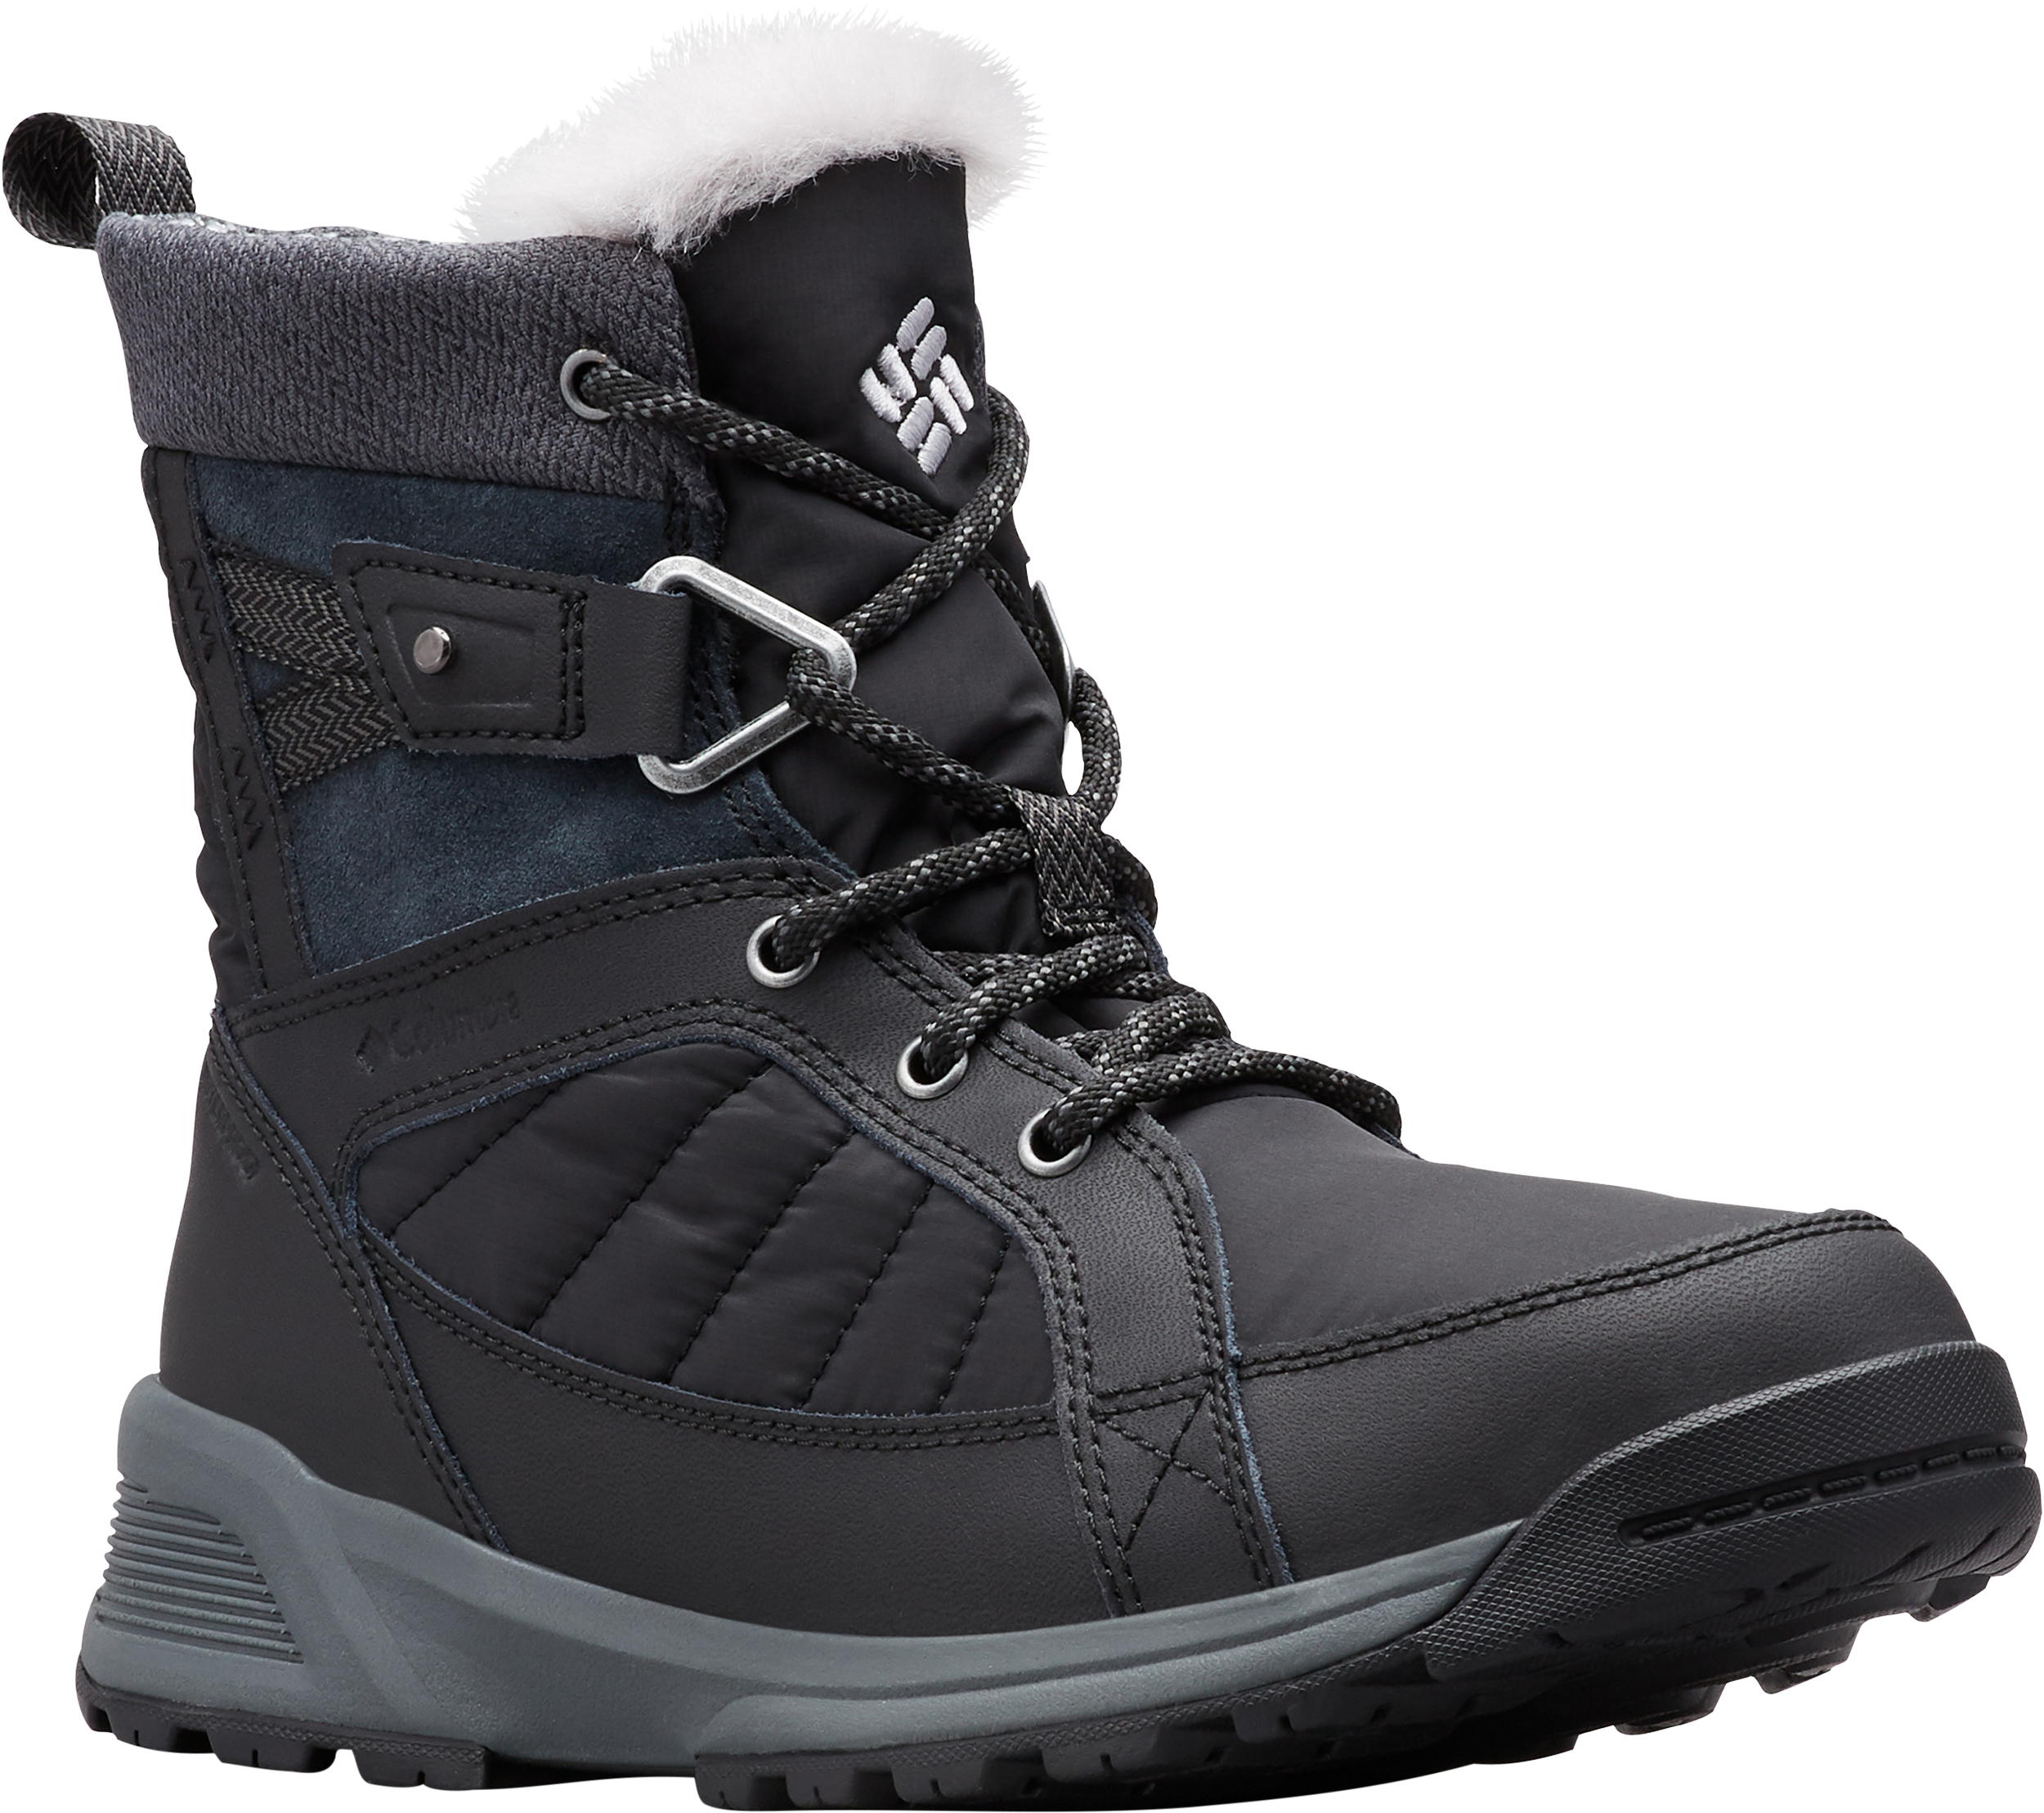 a847ce0dfc6 Women's Winter boots | MEC